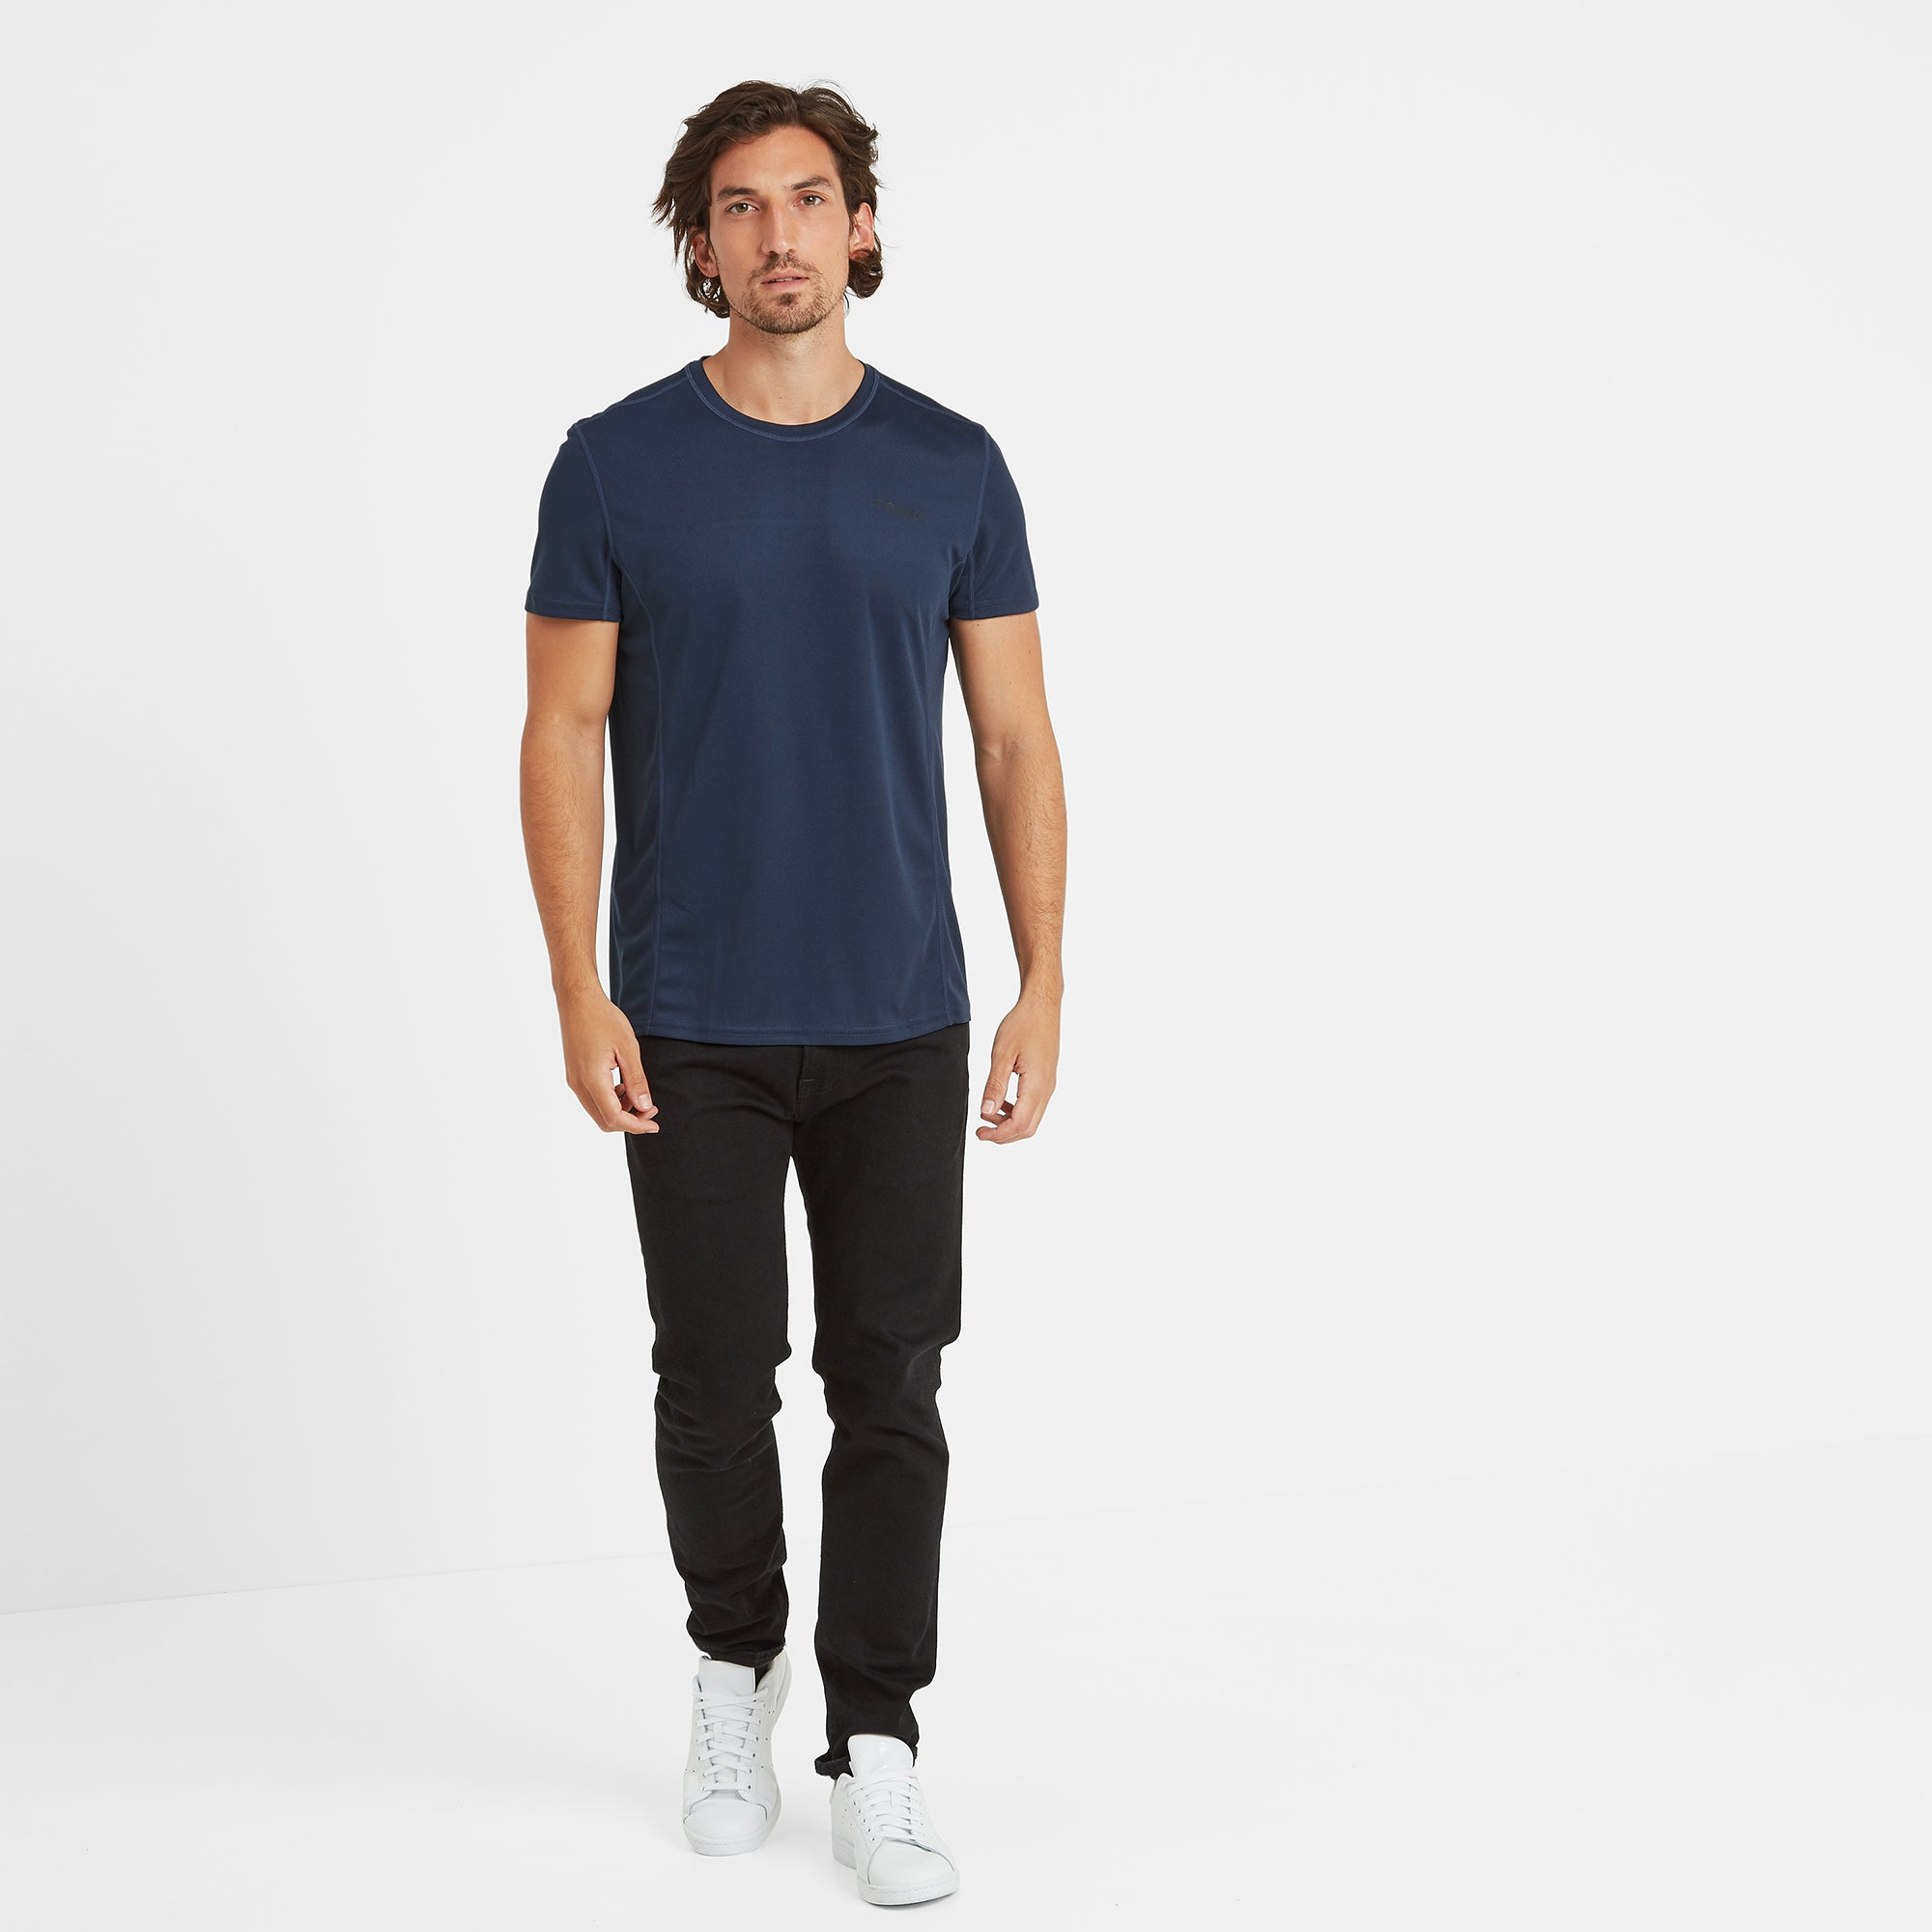 Blevin Mens Performance T-Shirt - Naval Blue